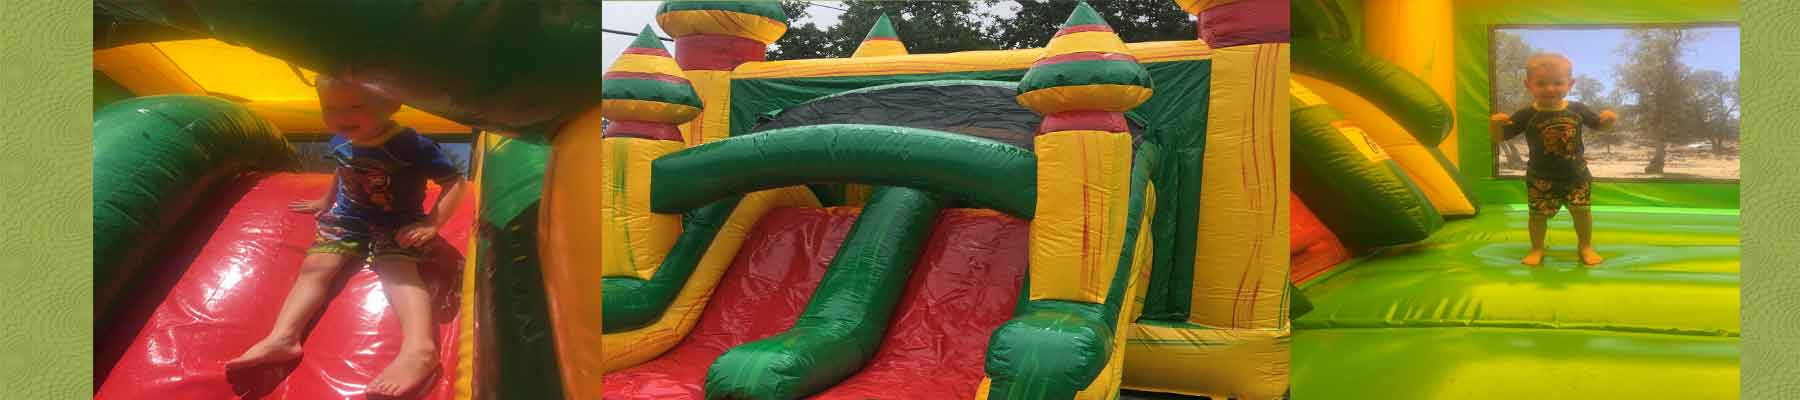 Lake County Bounce House Water Slide RentalsRentals